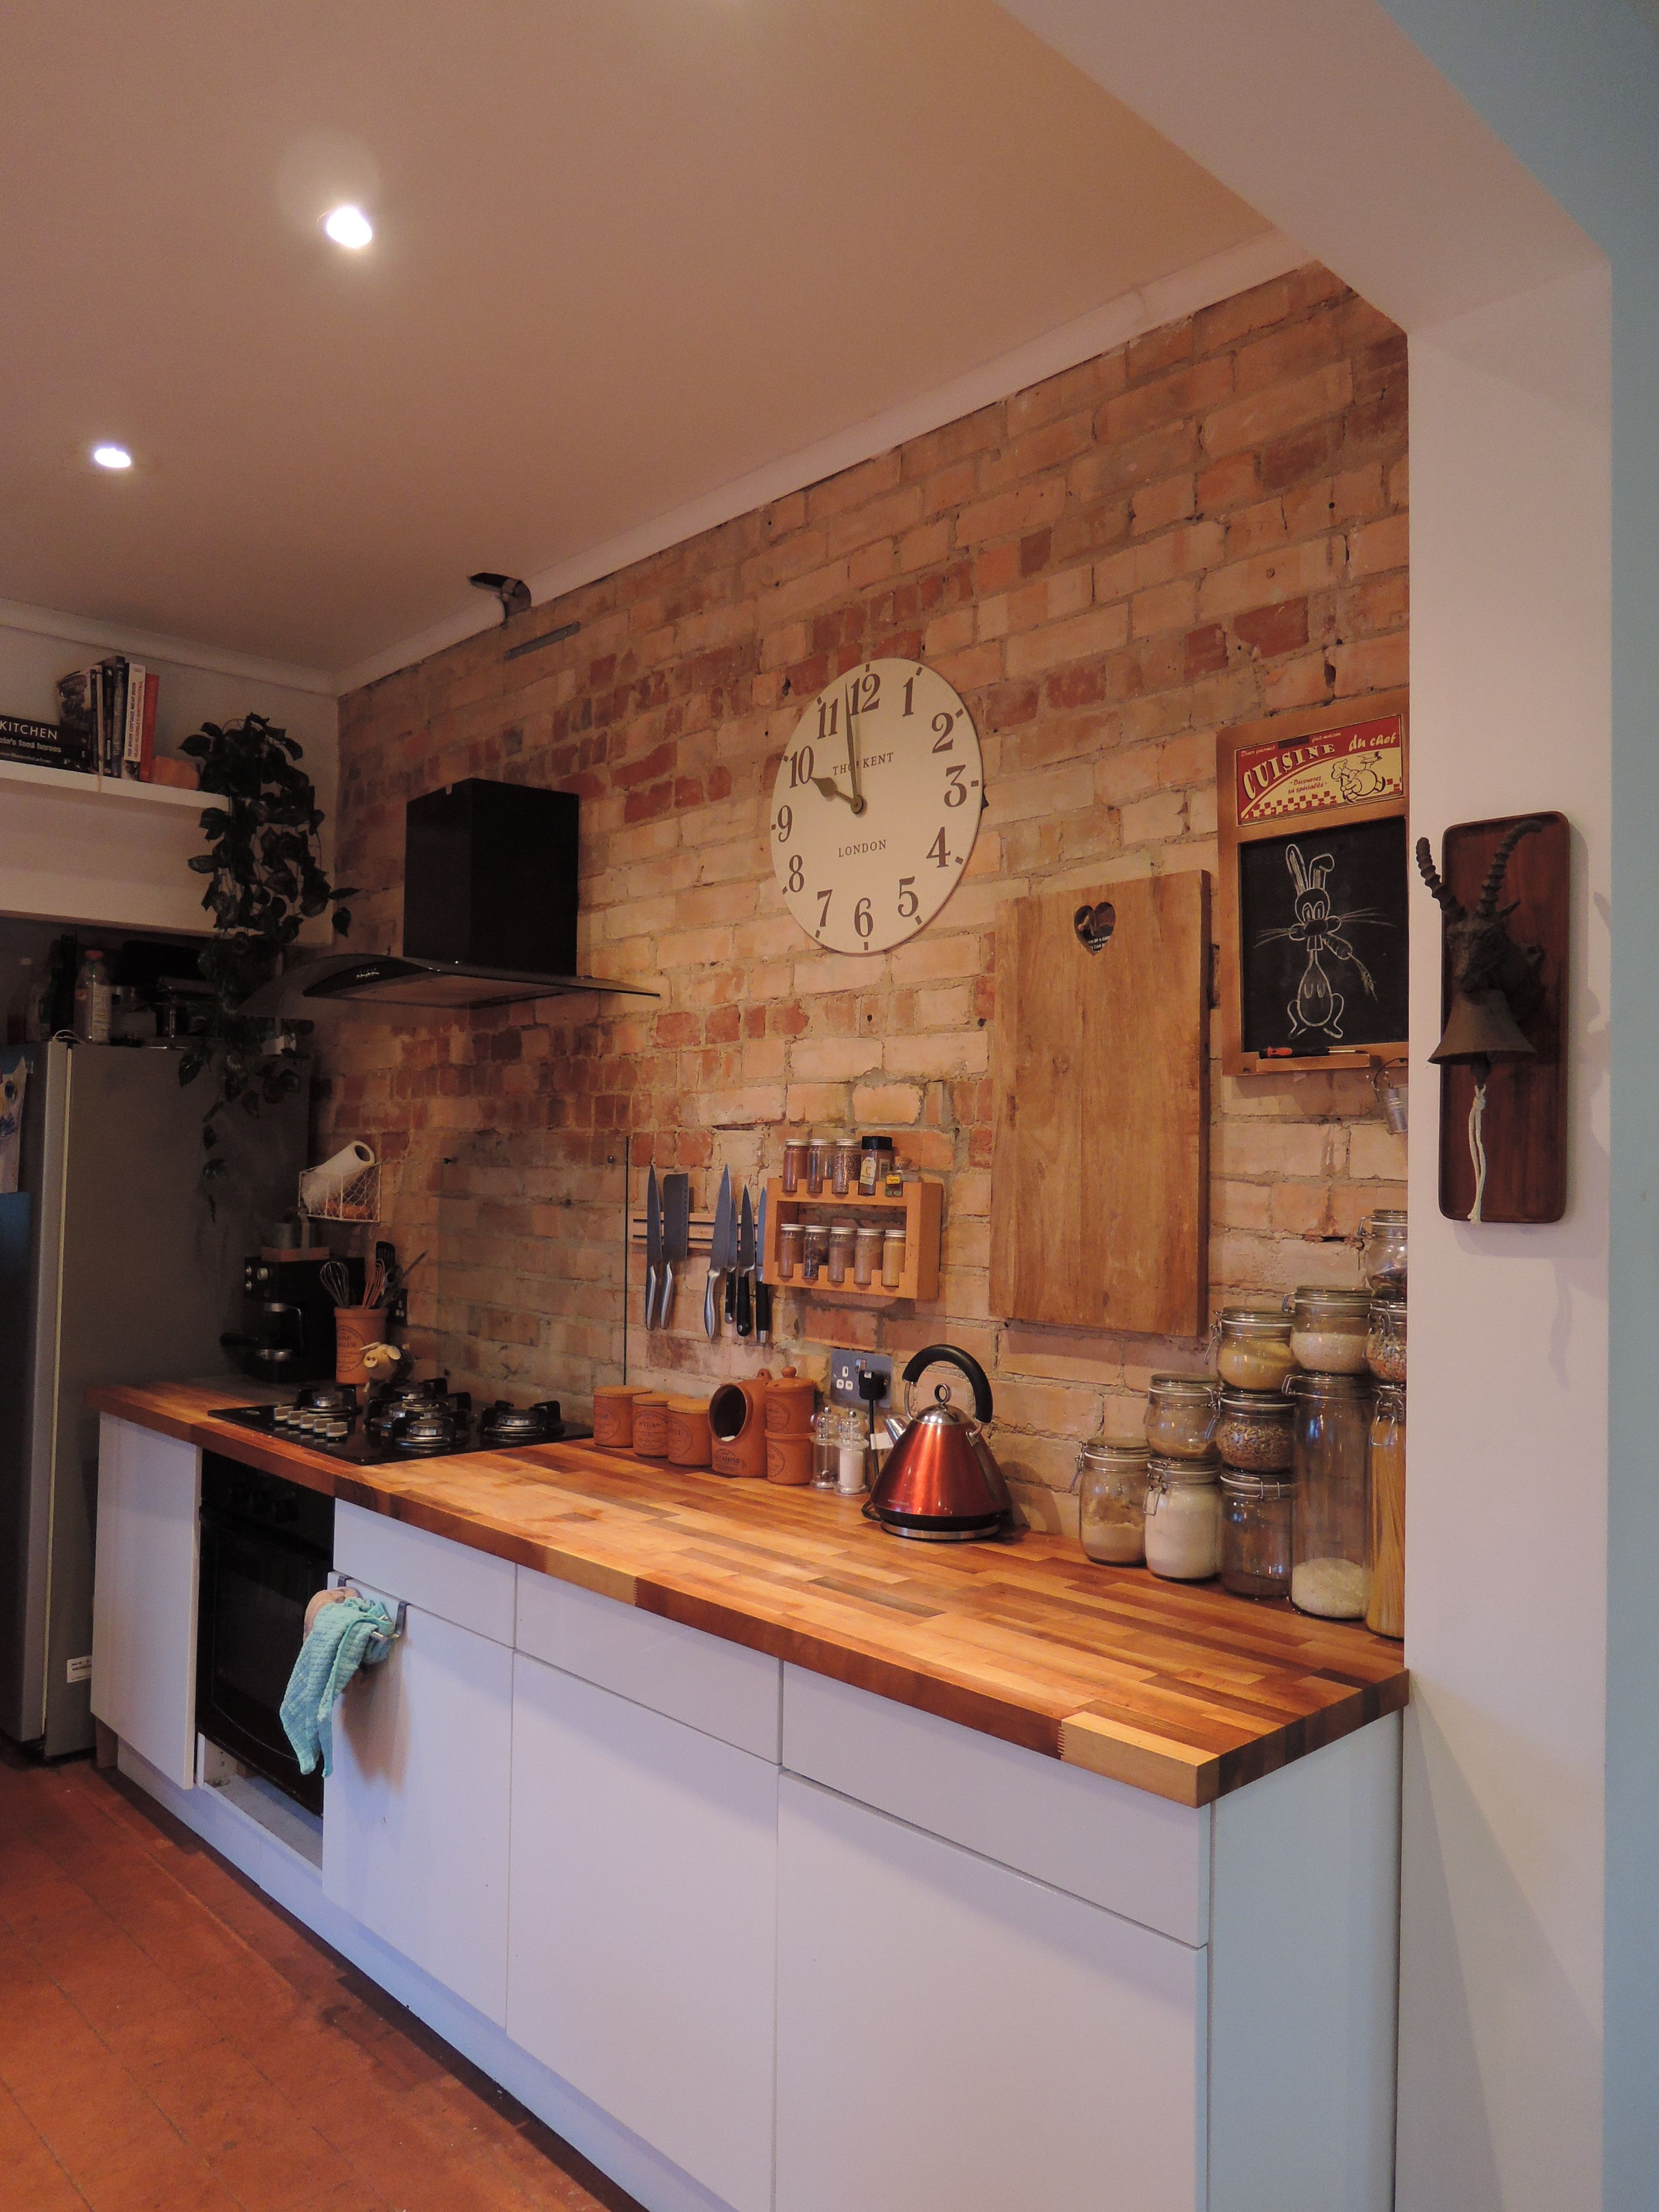 Large thomas kent clock on exposed brick wall classic french large thomas kent clock on exposed brick wall classic french restaurant chalkboard goat bell amipublicfo Image collections